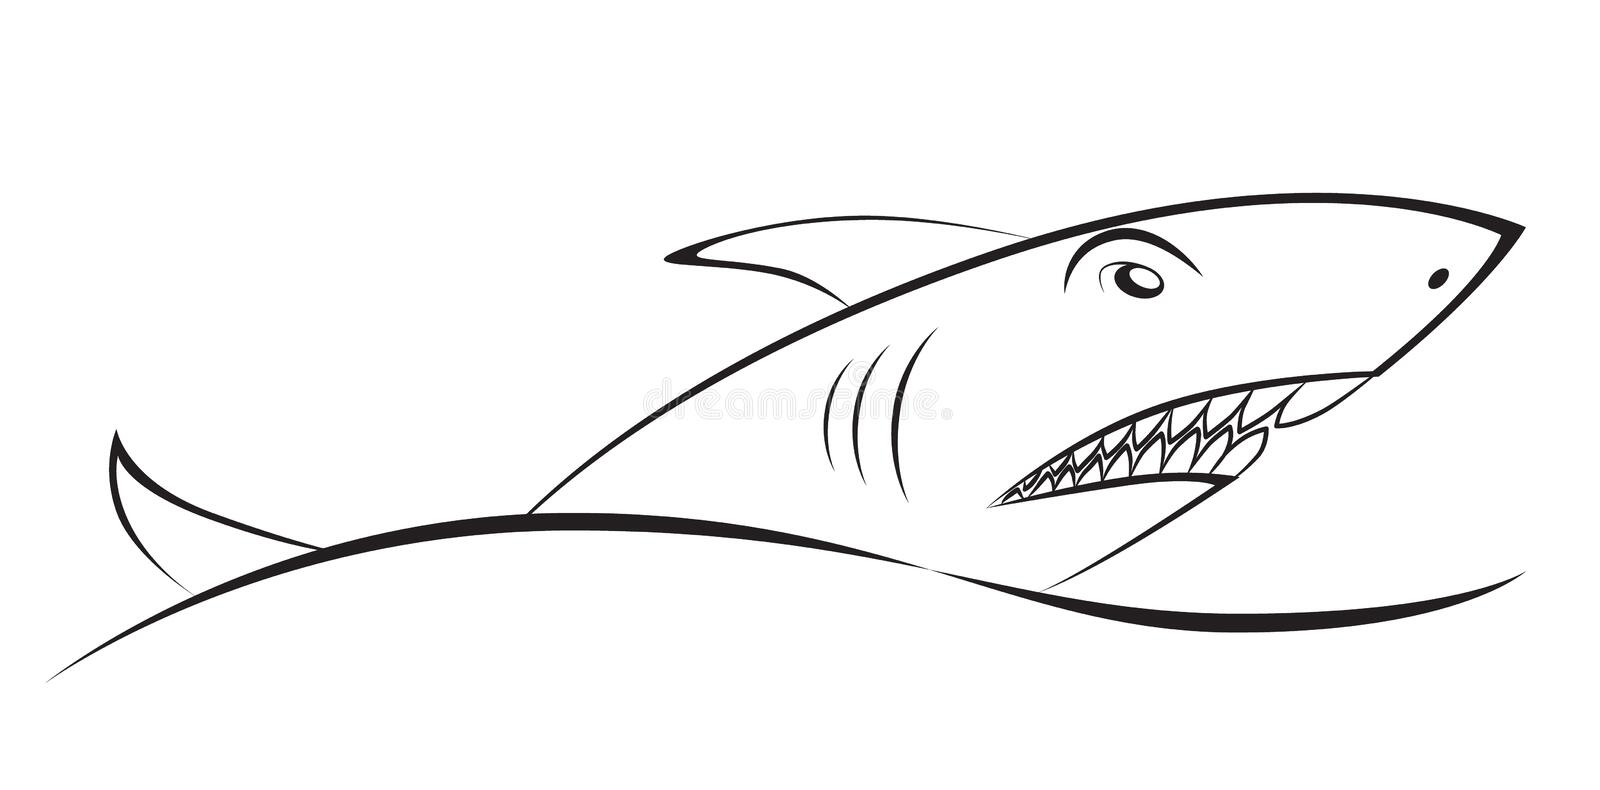 Shark over a wave. Graphic drawing. Element symbol, sign. stock illustration